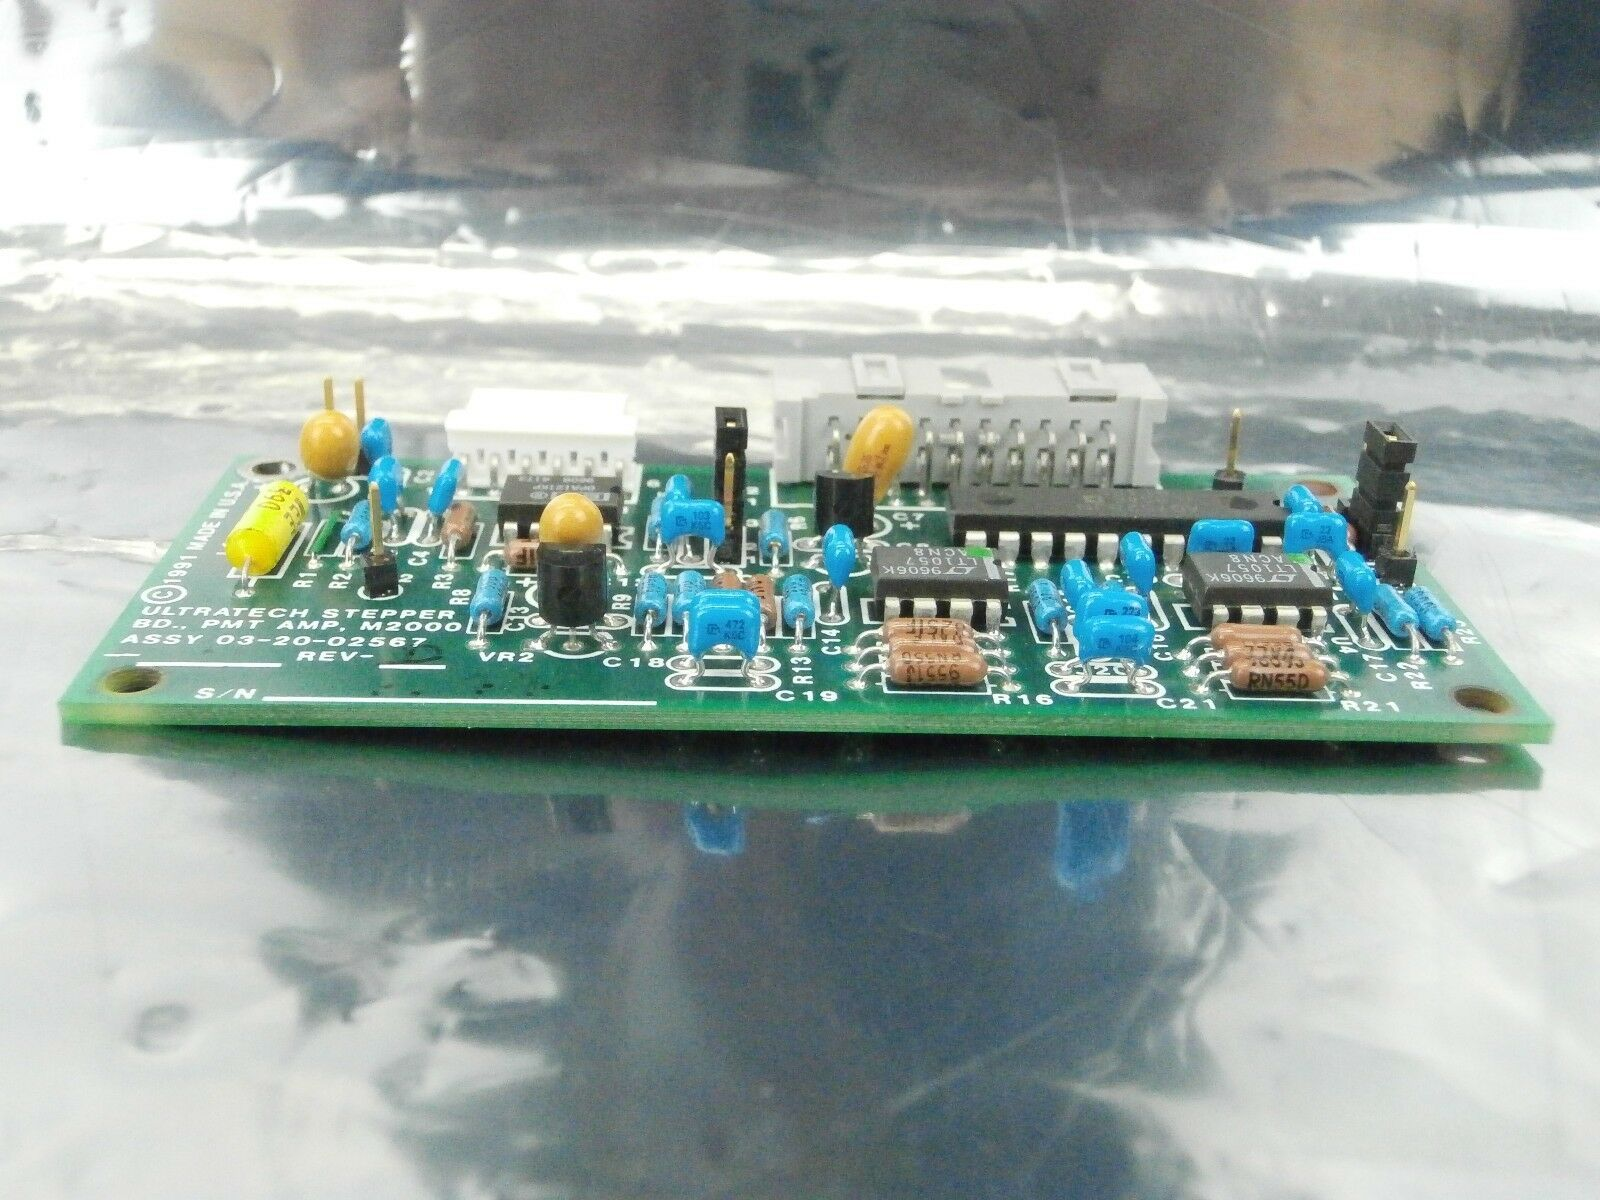 Ultratech Stepper 03-20-02567 Photomultiplier Amplifier M2000 PCB Board Used